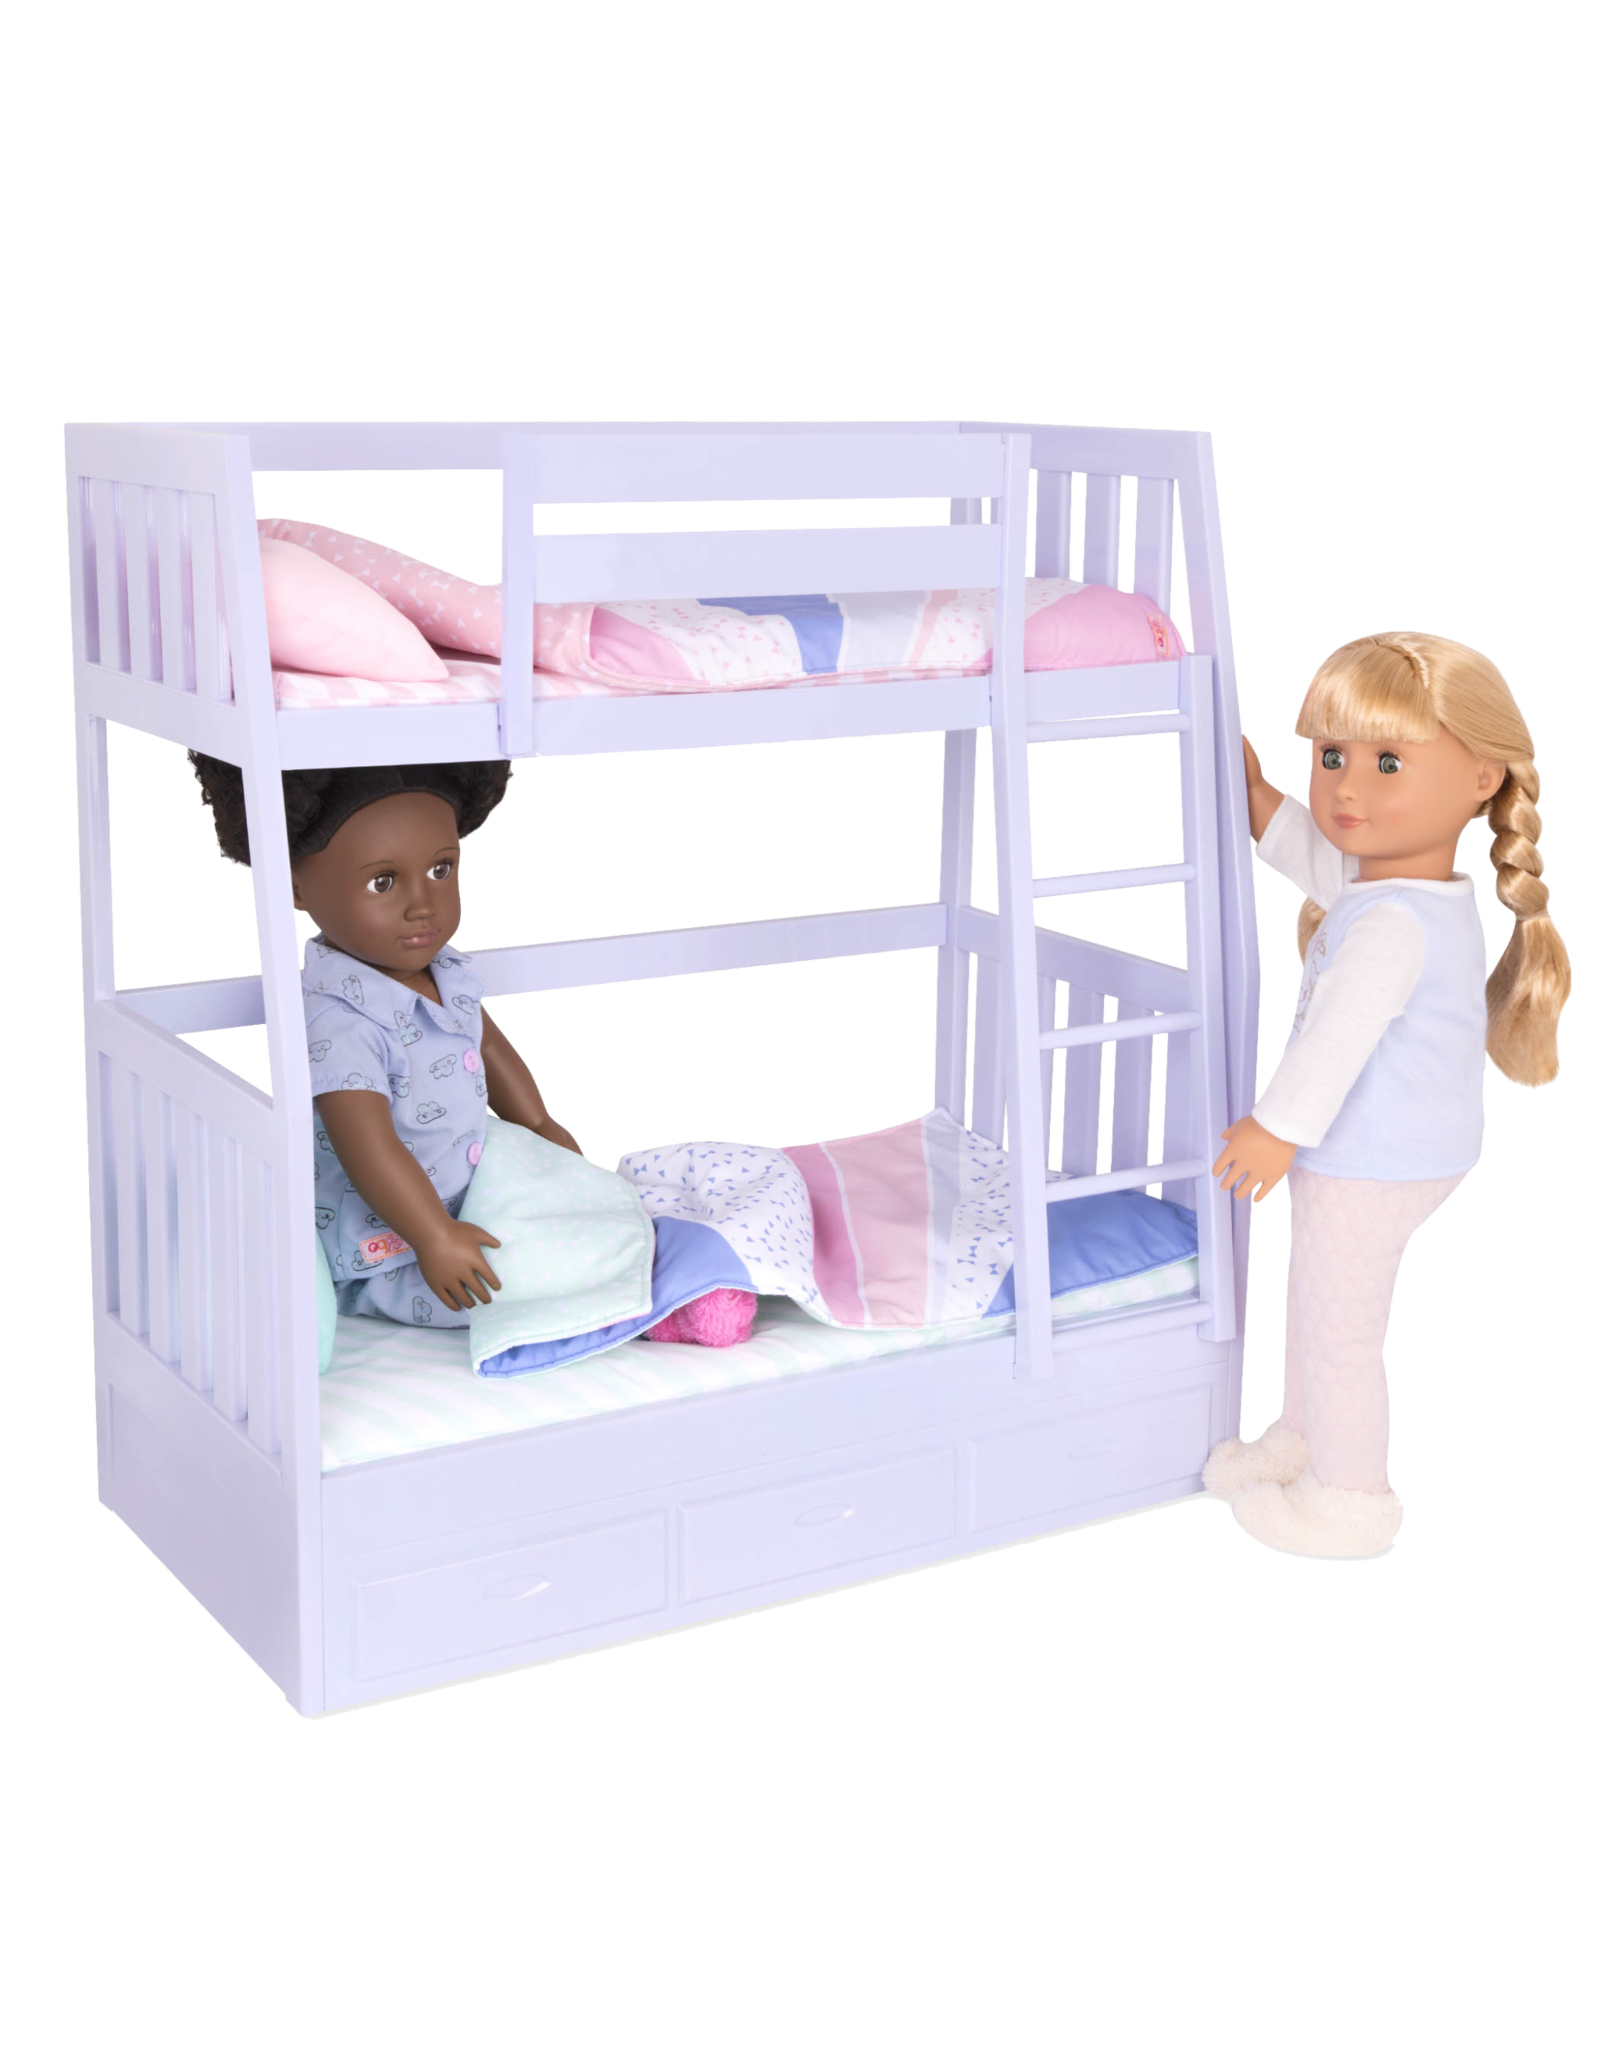 Our Generation Our Generation Bunk Bed